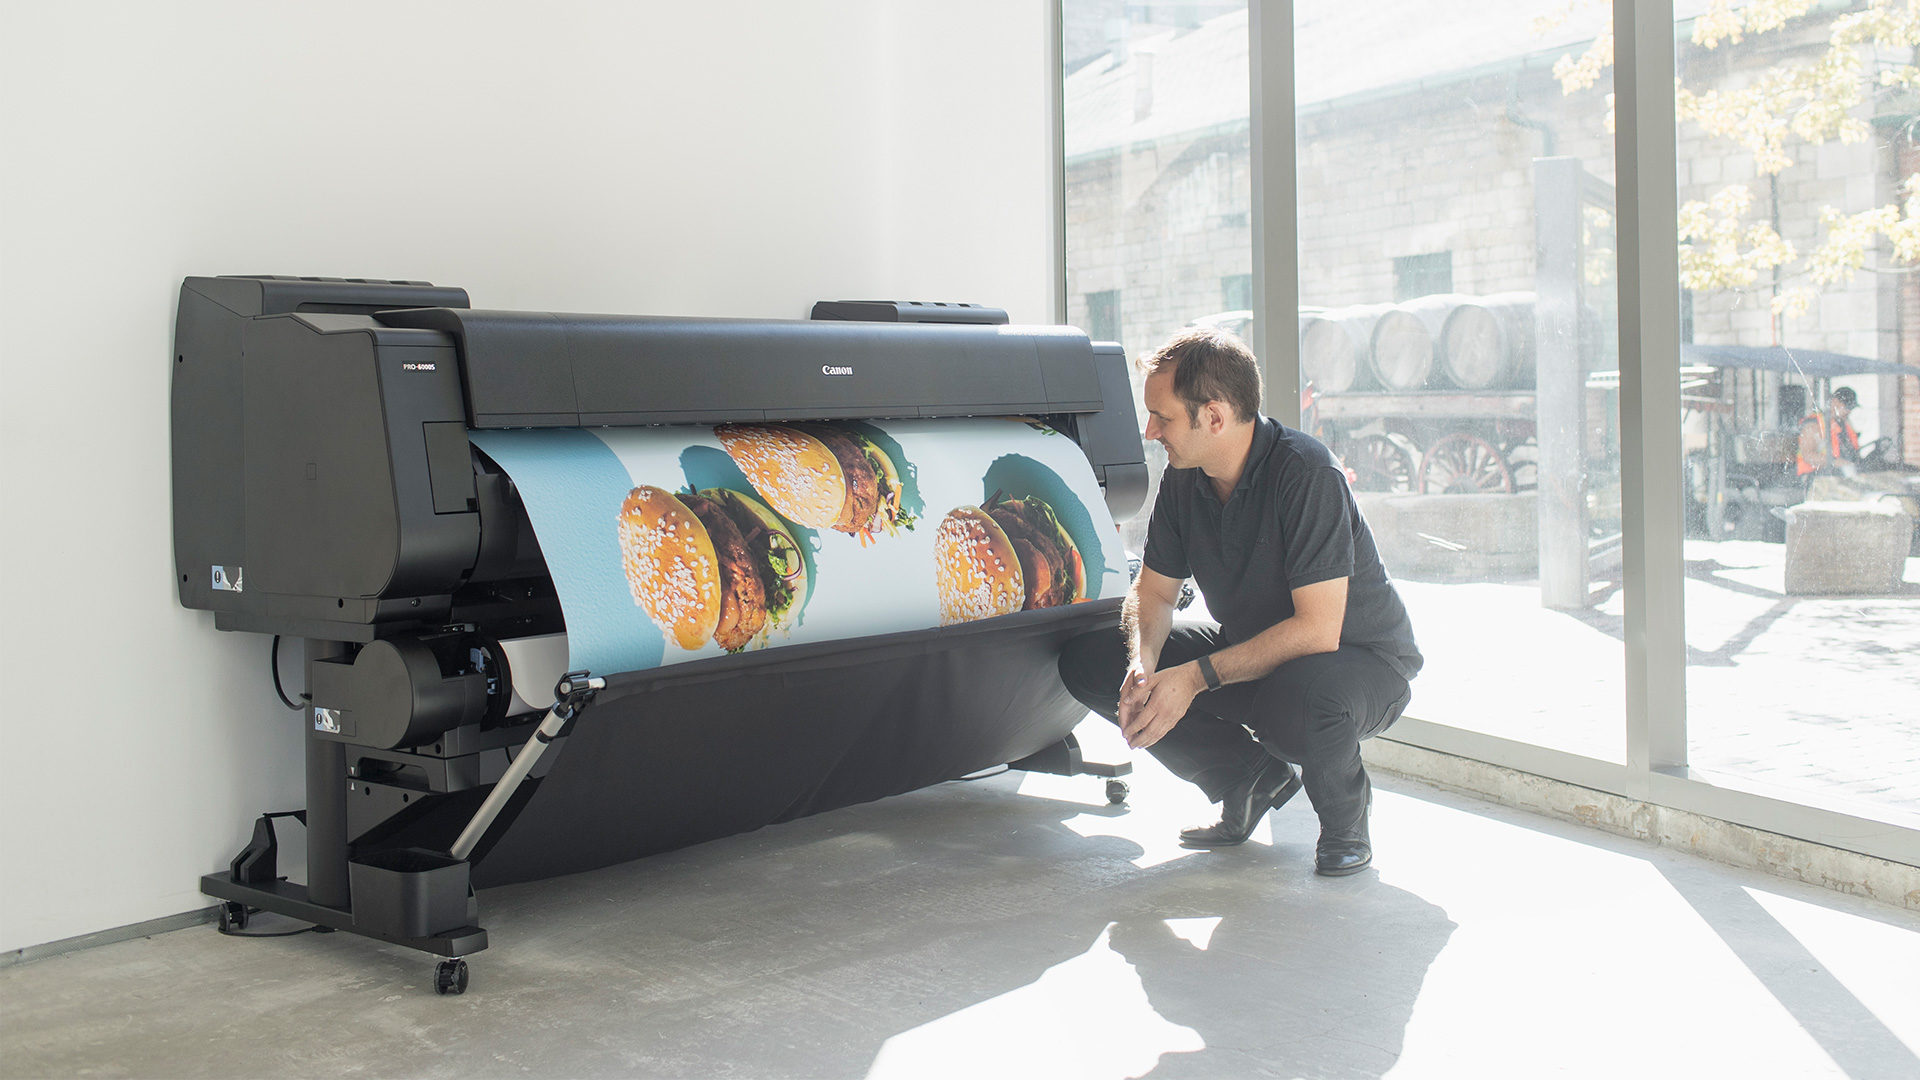 man-printing-on-canon-wide-format-printer